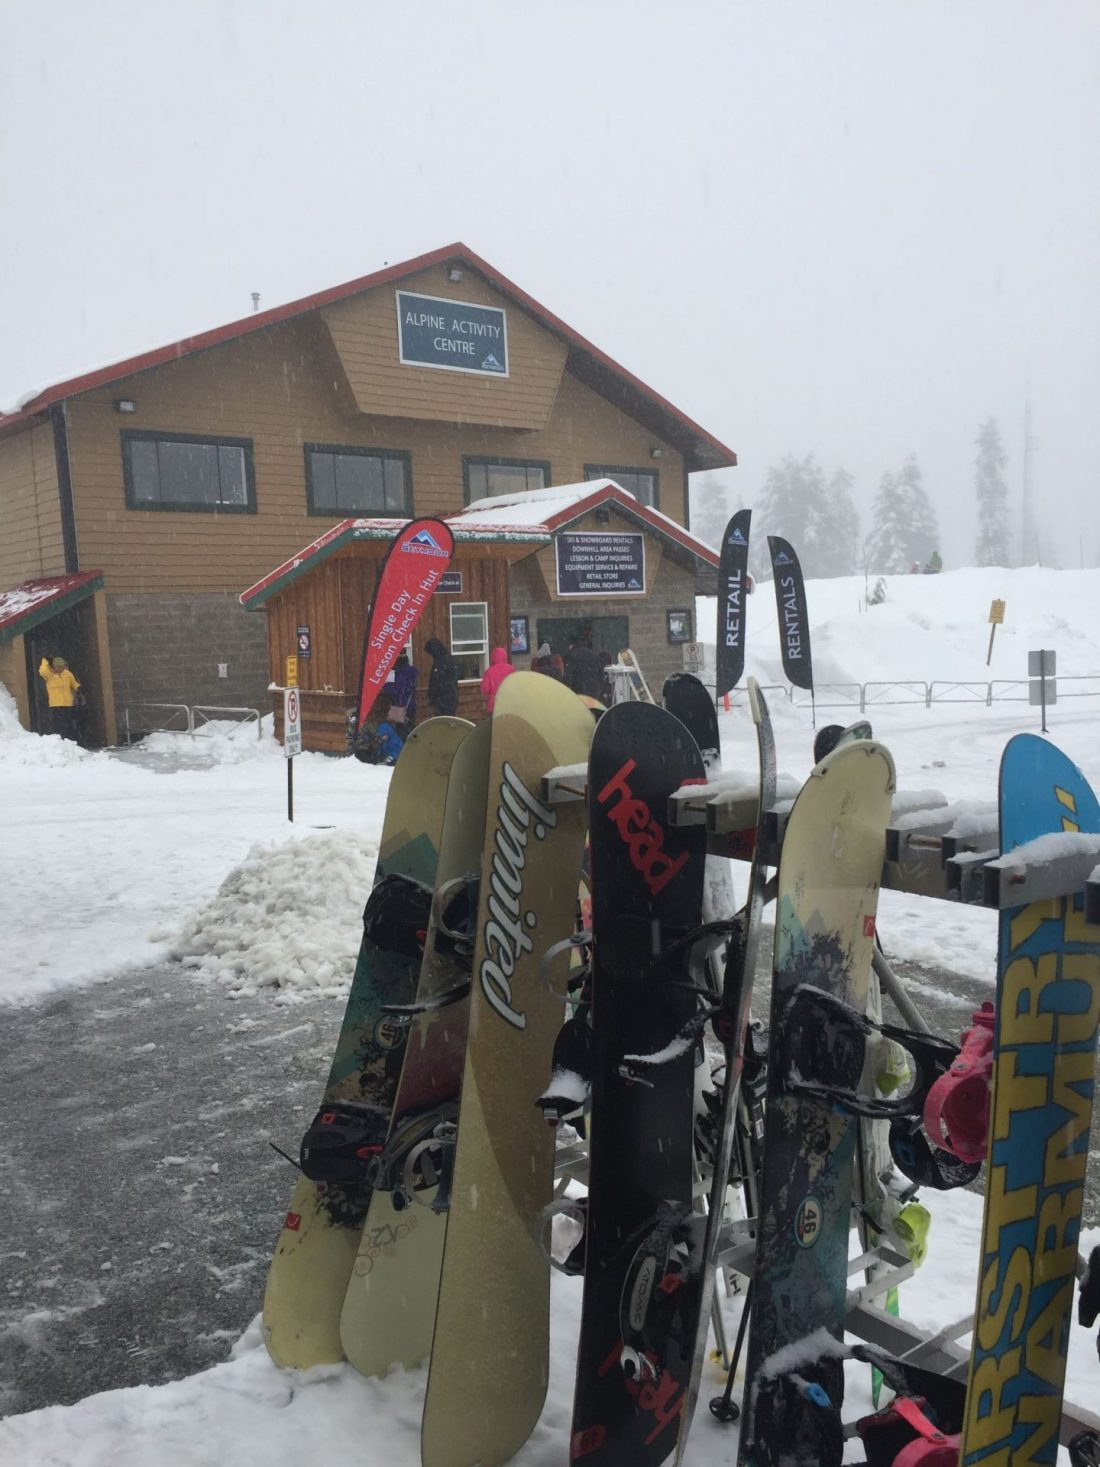 Snowboards on Mount Seymour, Vancouver